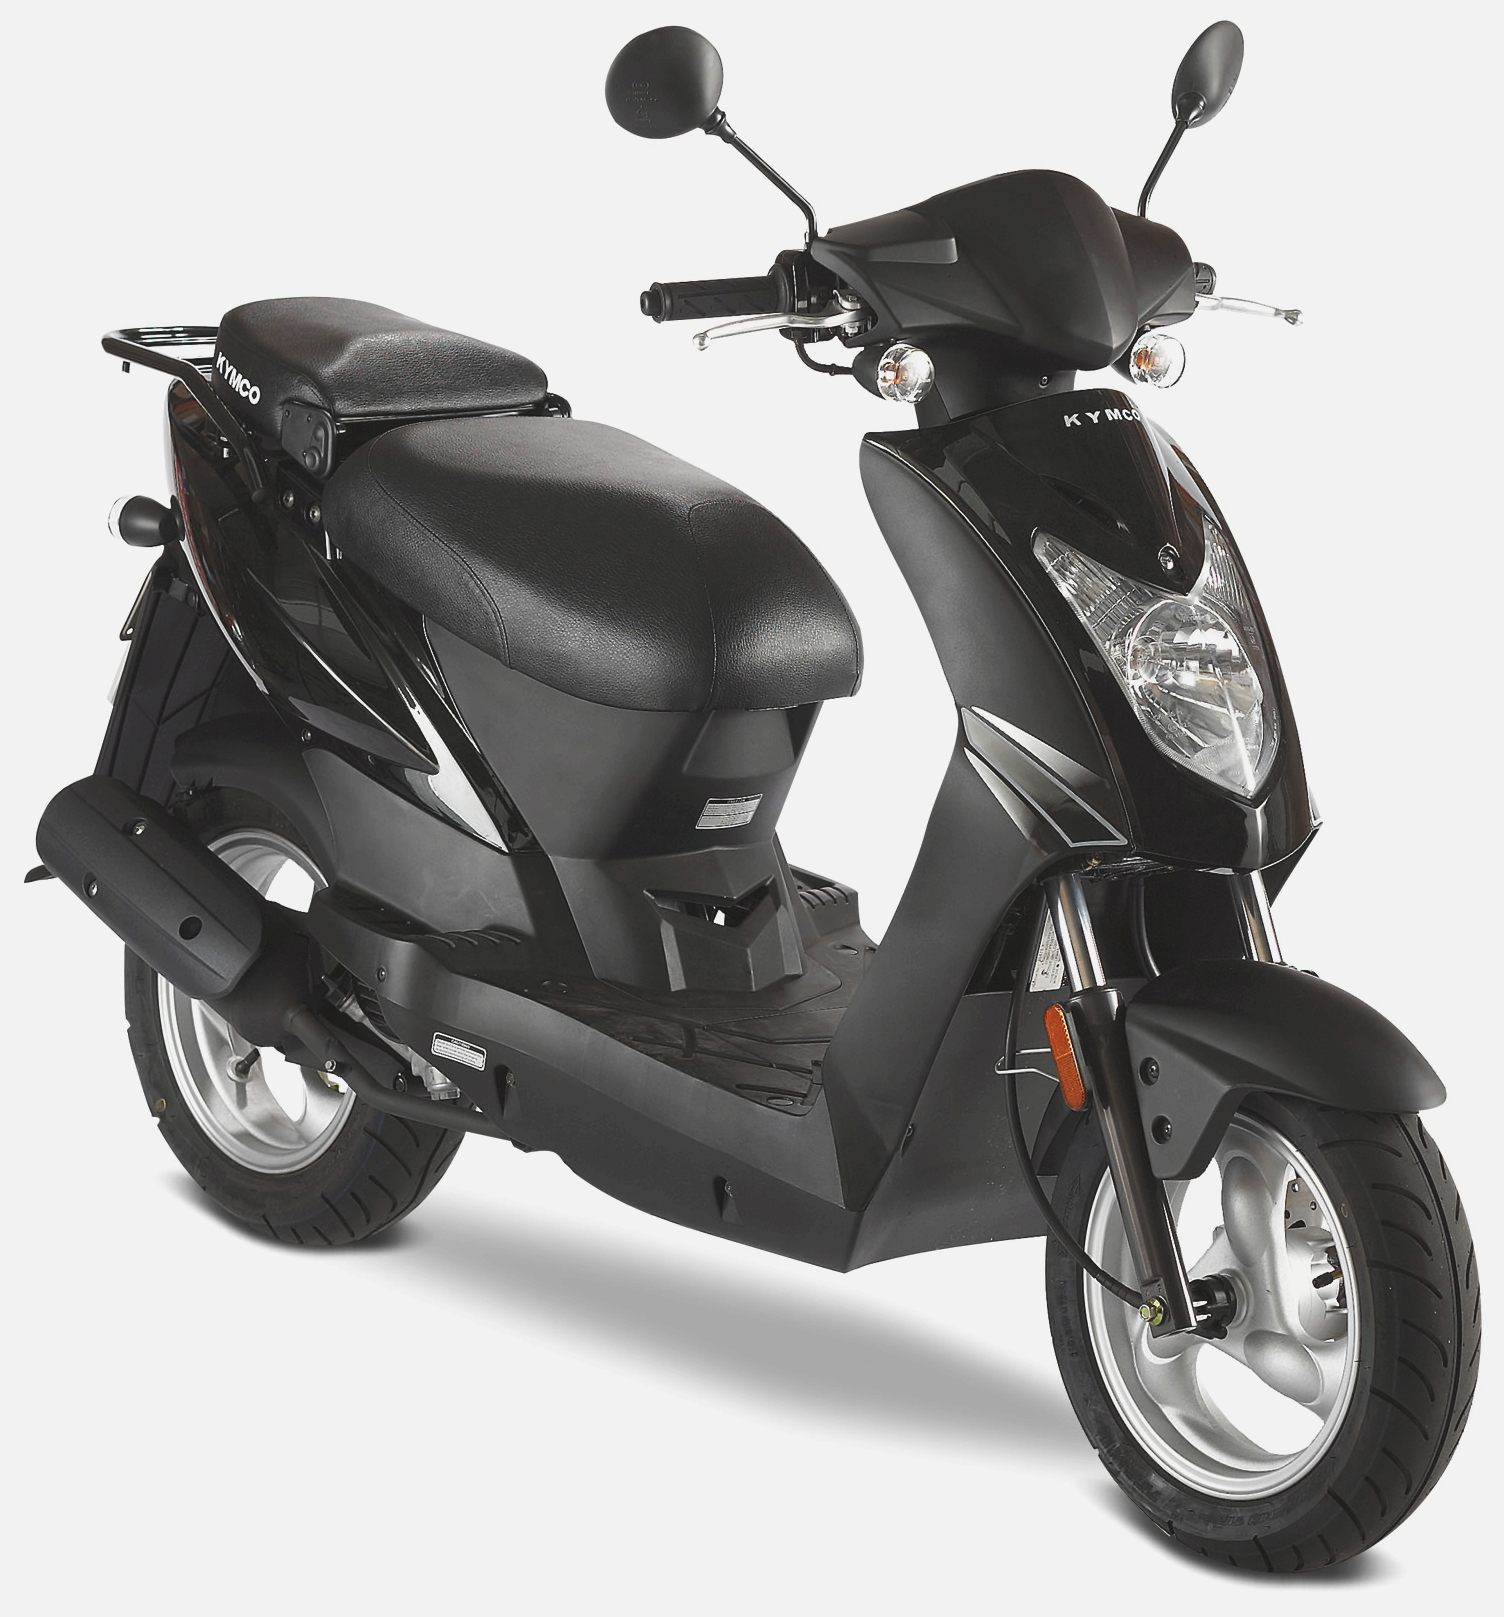 Kymco Agility City 125 2010 images #101826